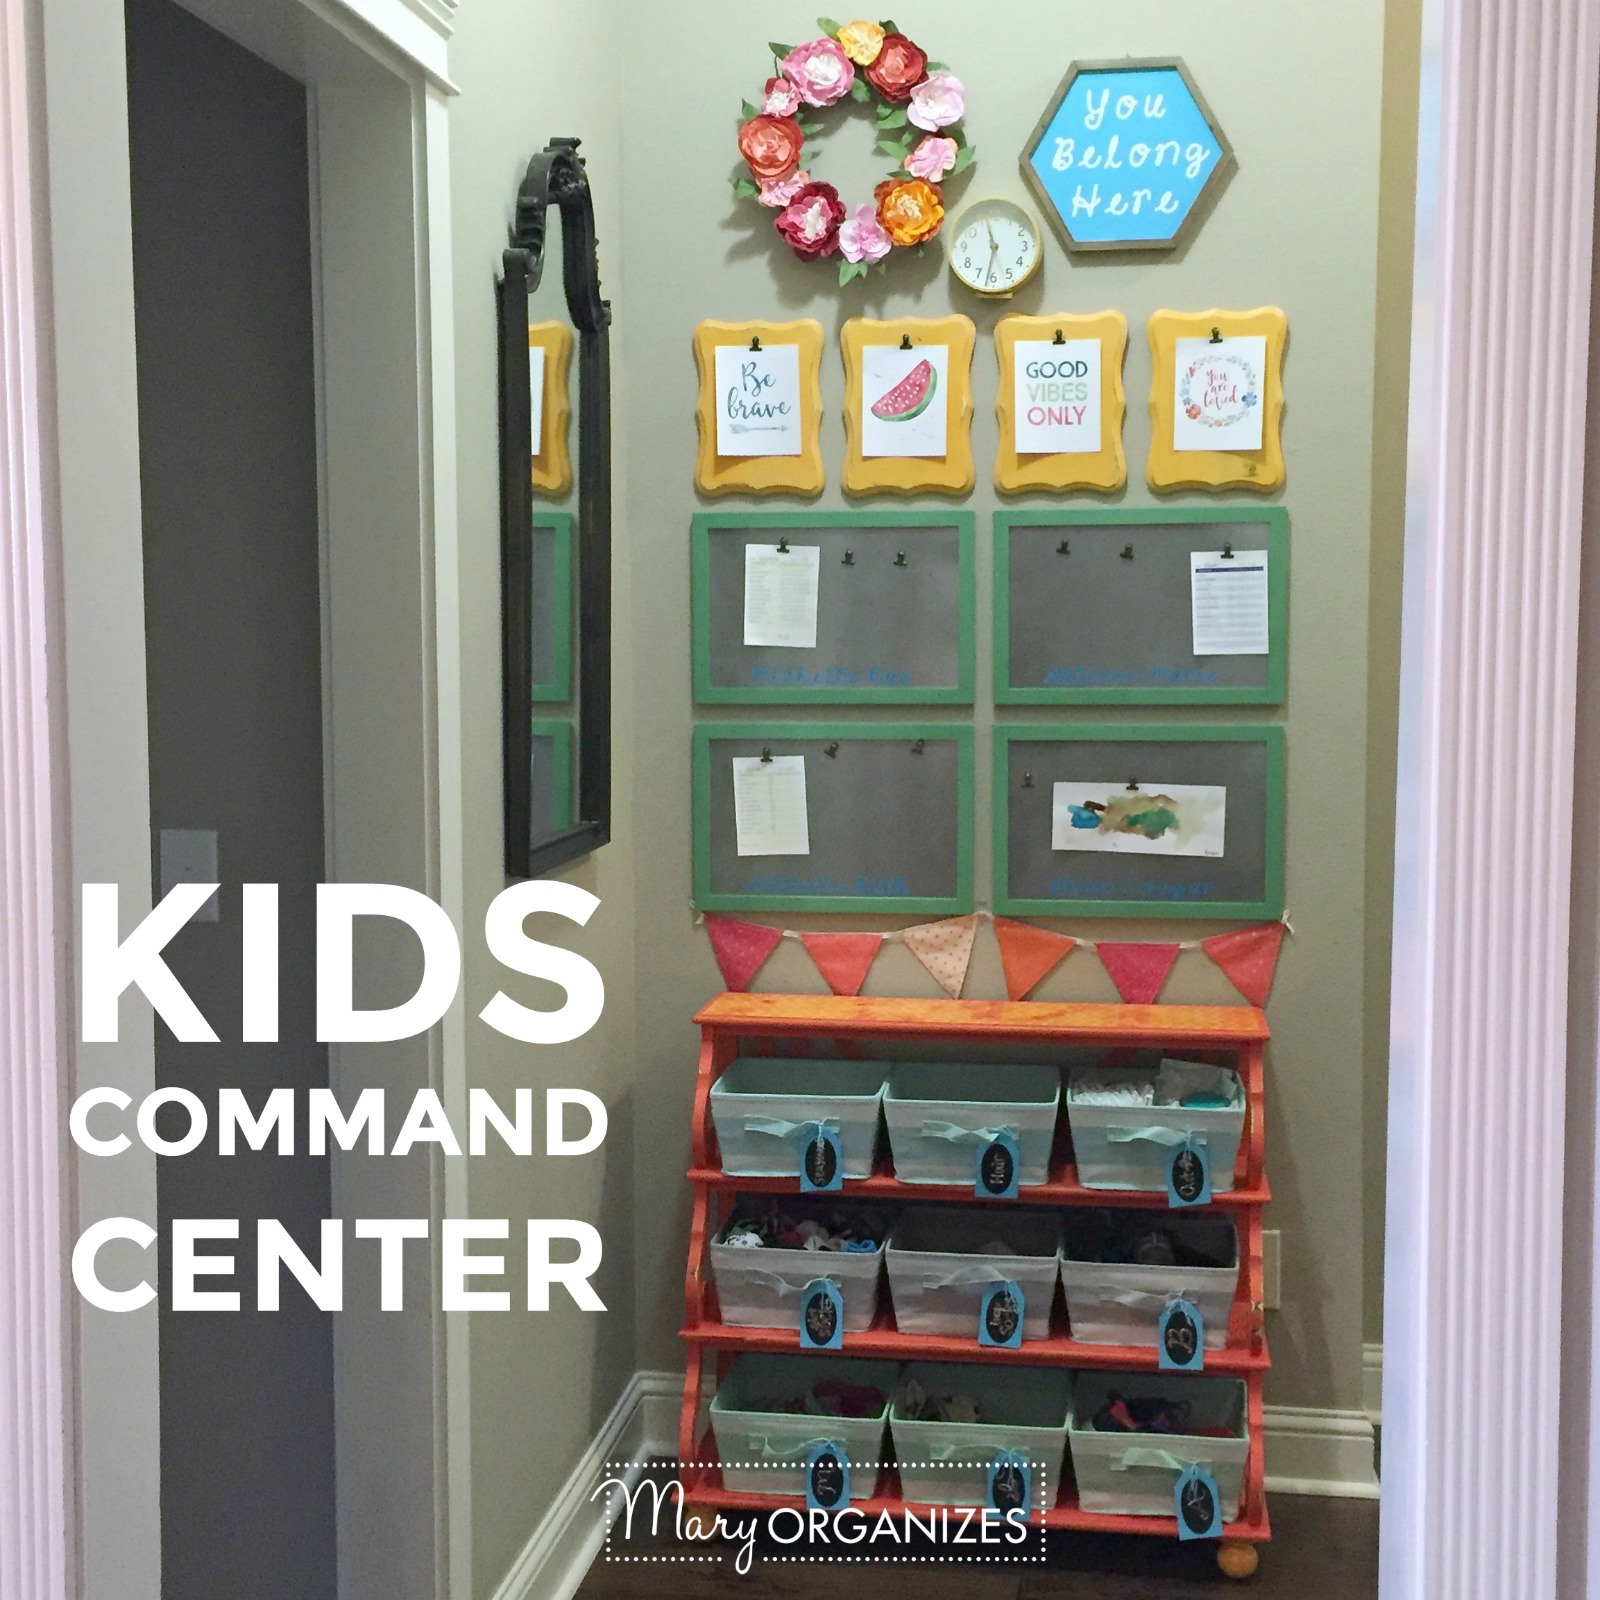 Kids Command Center - for hanging chore lists and more 12